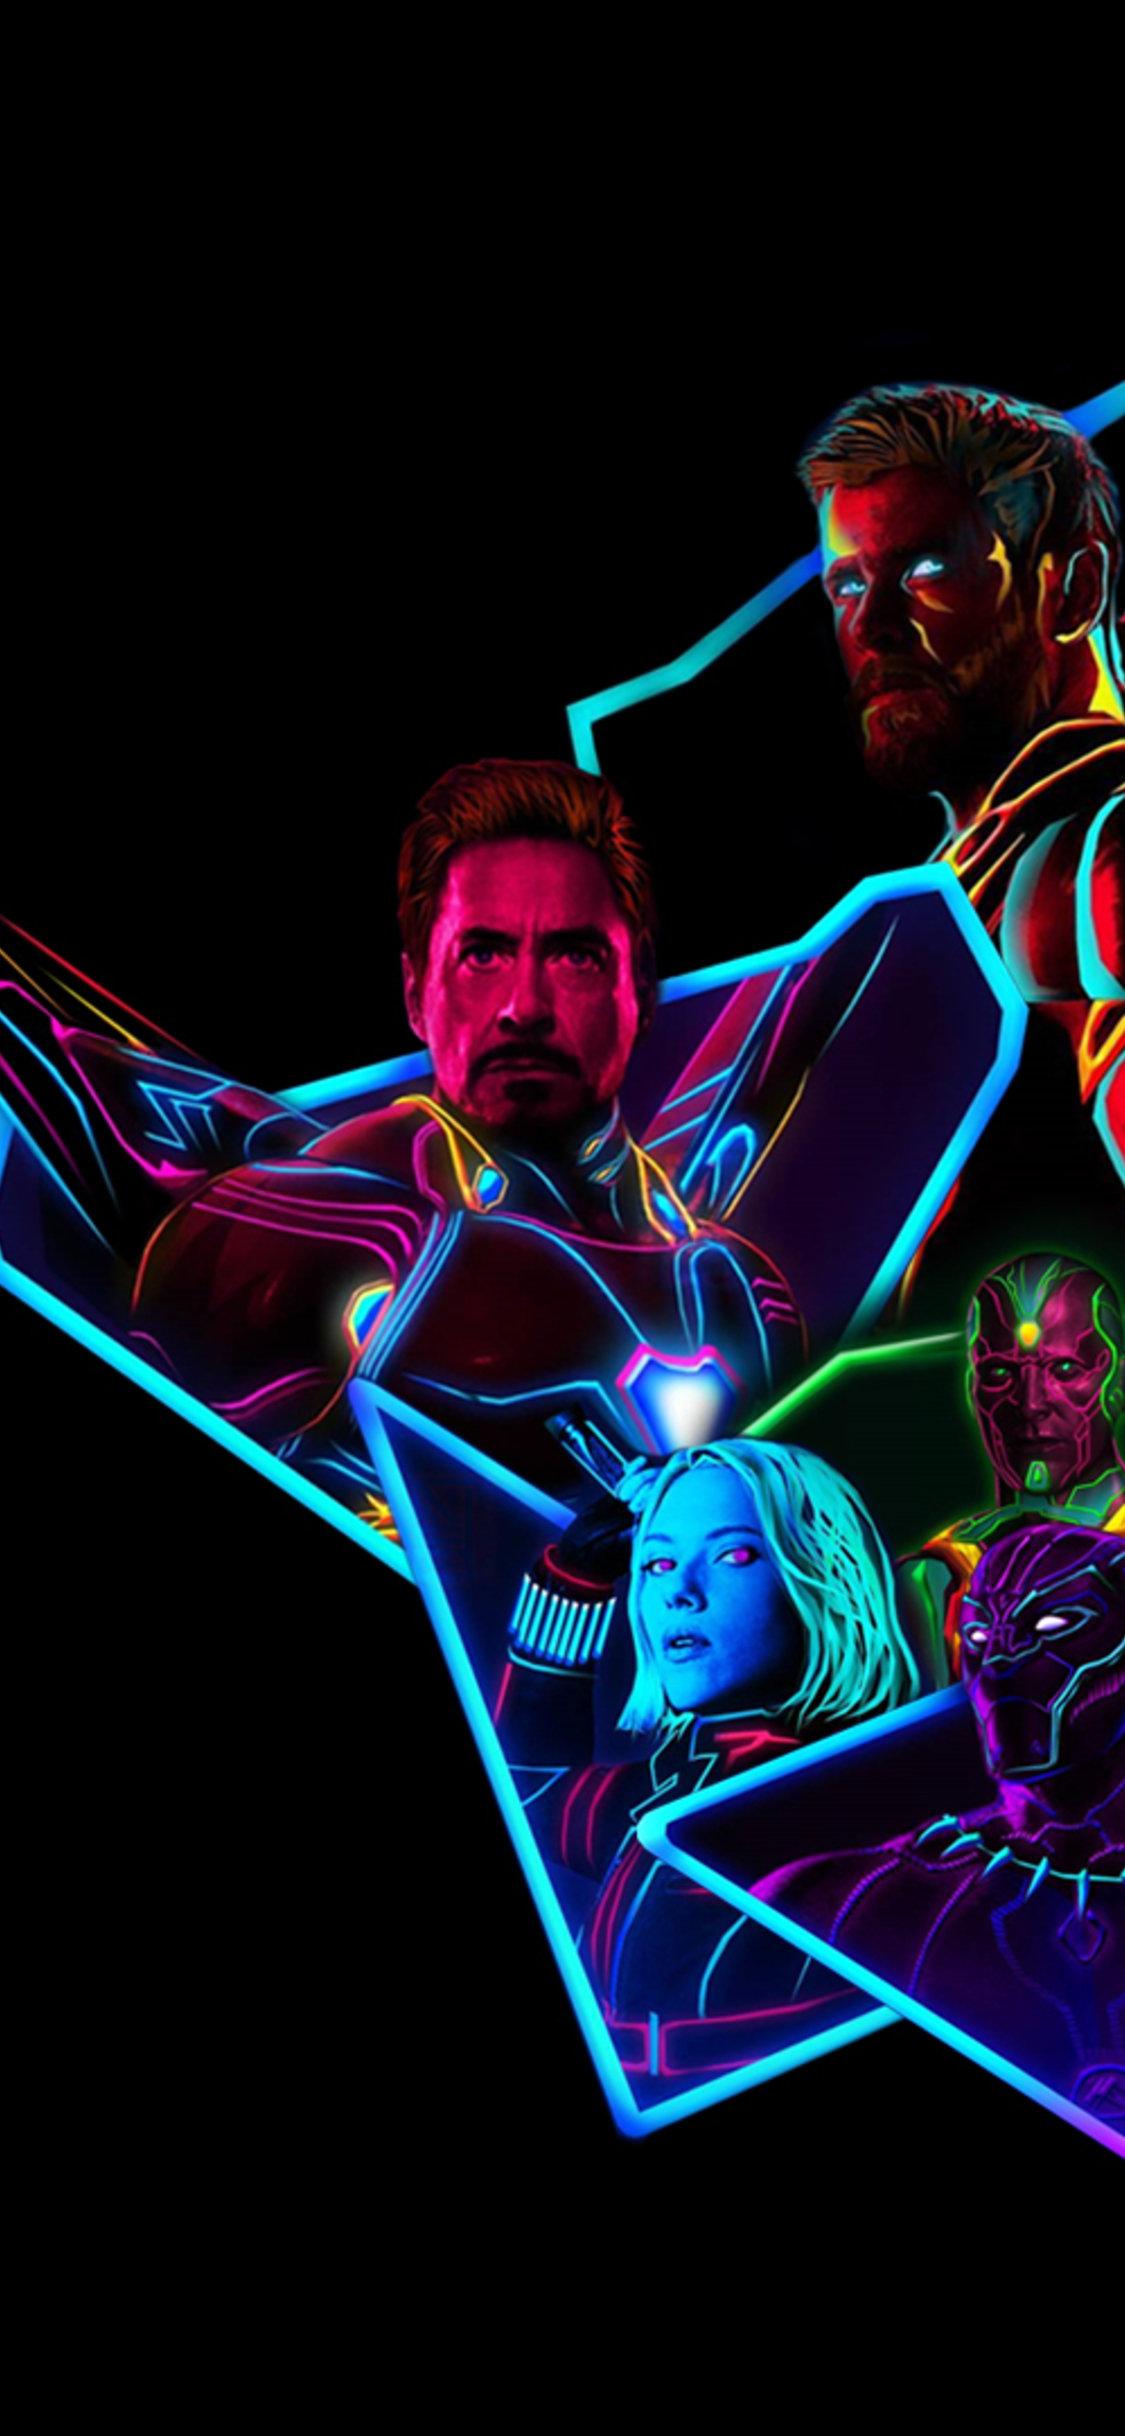 Avengers Hd Wallpapers For Iphone , HD Wallpaper & Backgrounds